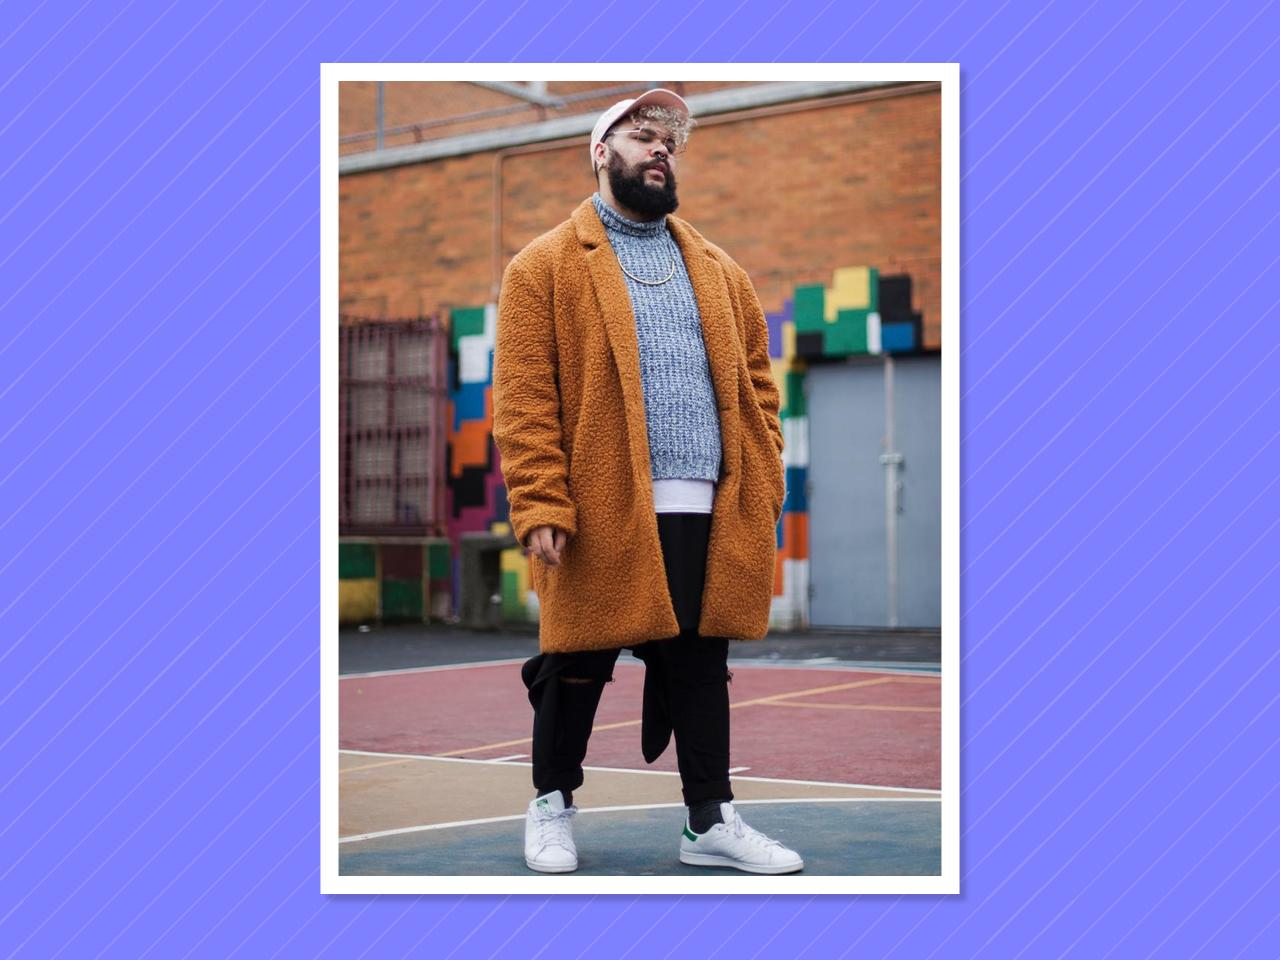 """<p></p><p><a rel=""""nofollow"""" href=""""https://www.instagram.com/marquimode/"""">Neal</a> is a fashion chameleon taking over the NYC street-style scene with his downtown vibes and dressed-up sporty nature. (Photo: Vincent Master) </p><p></p>"""